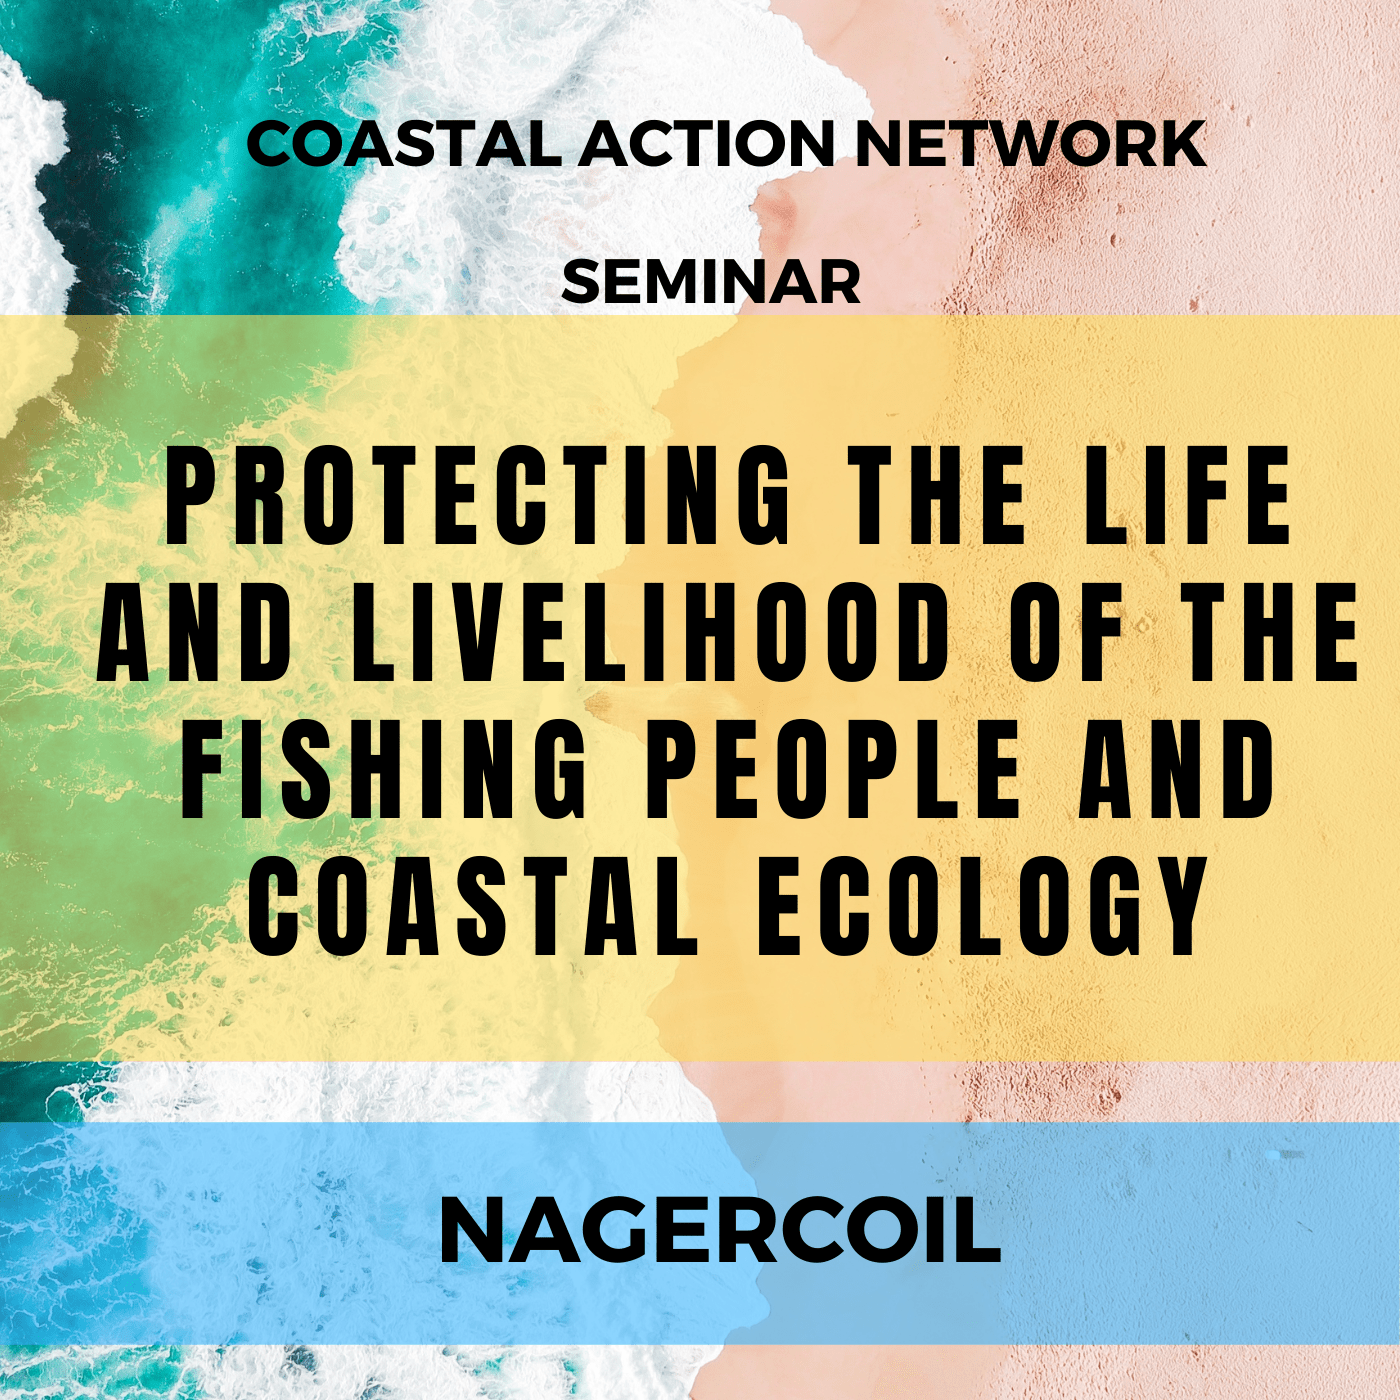 Protecting the Life and Livelihood of the Fishing People and Coastal Ecology